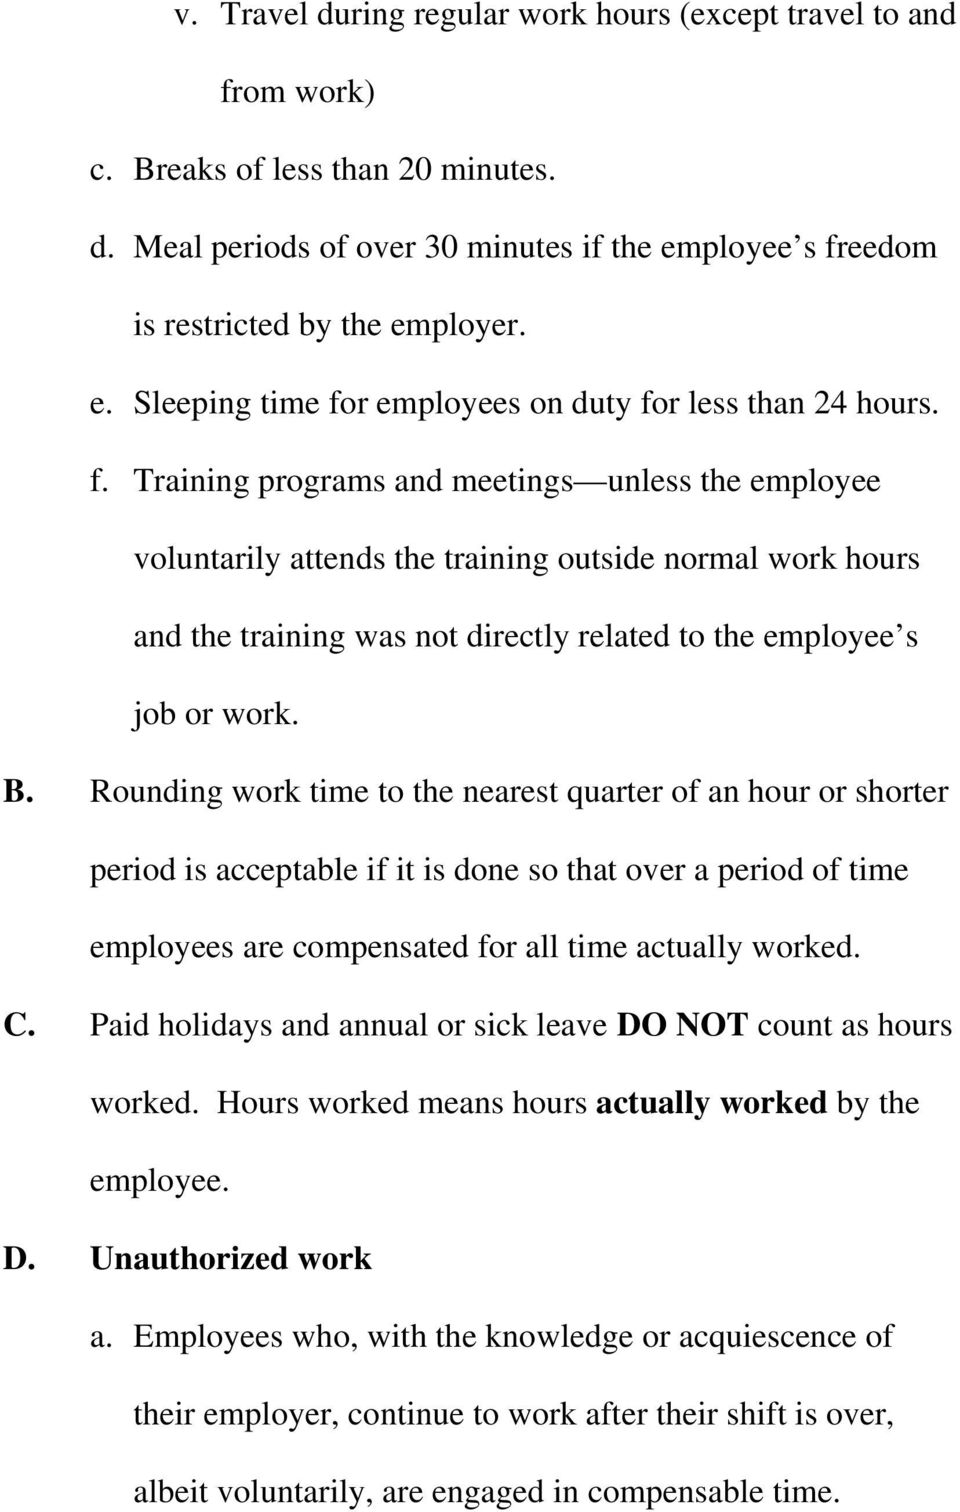 B. Rounding work time to the nearest quarter of an hour or shorter period is acceptable if it is done so that over a period of time employees are compensated for all time actually worked. C.